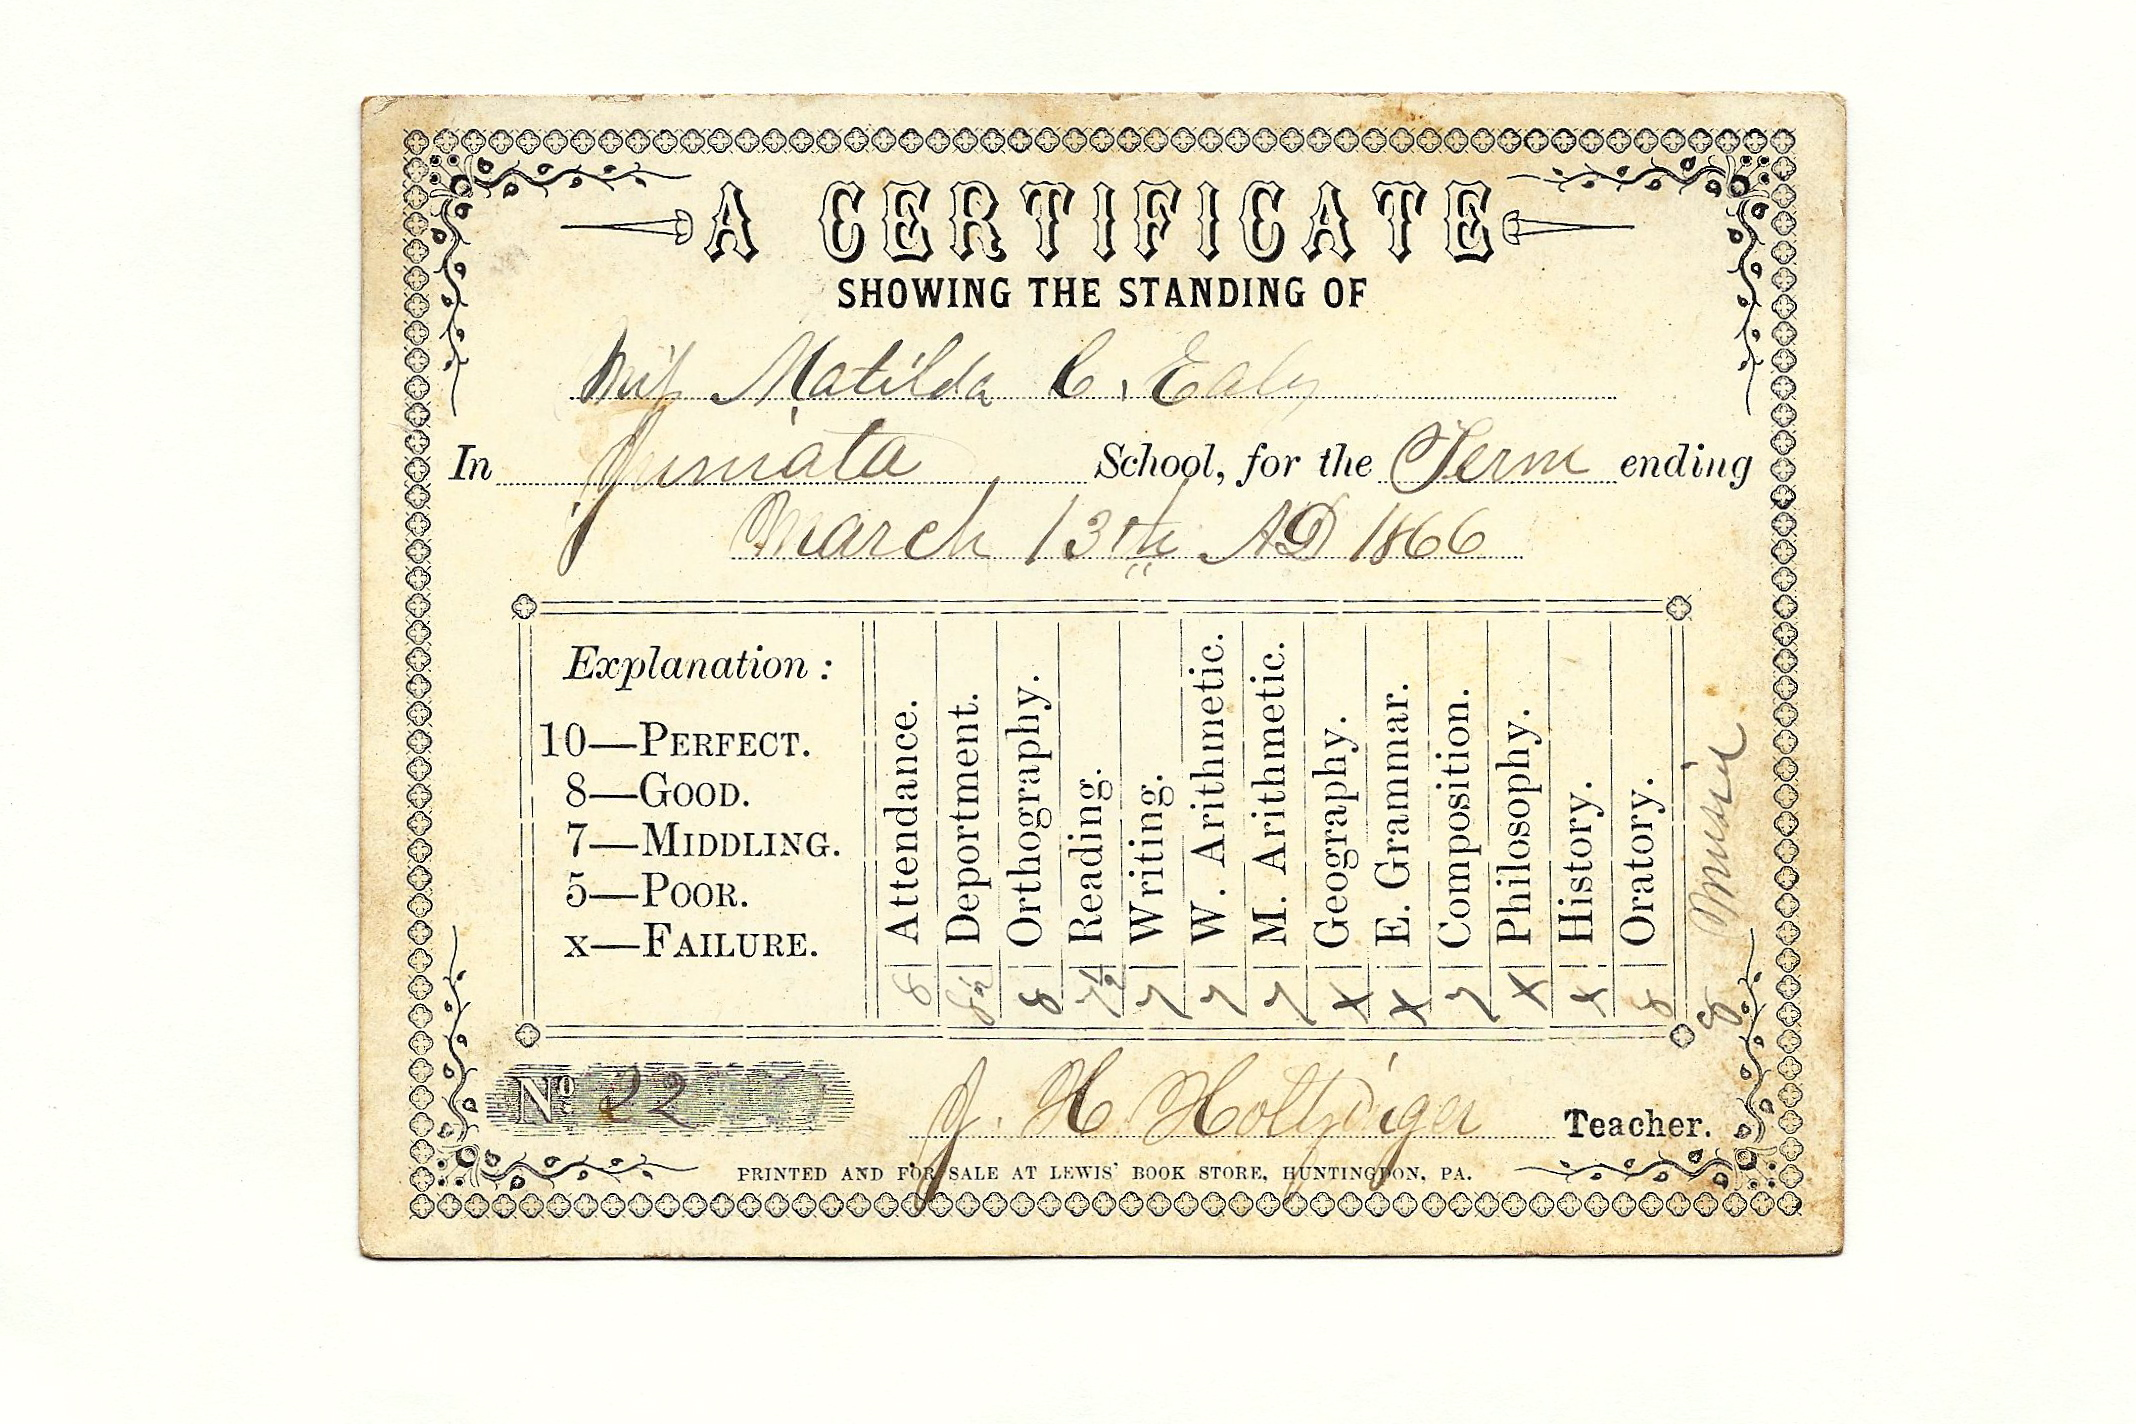 Matilda C Ealy's school report card  1866